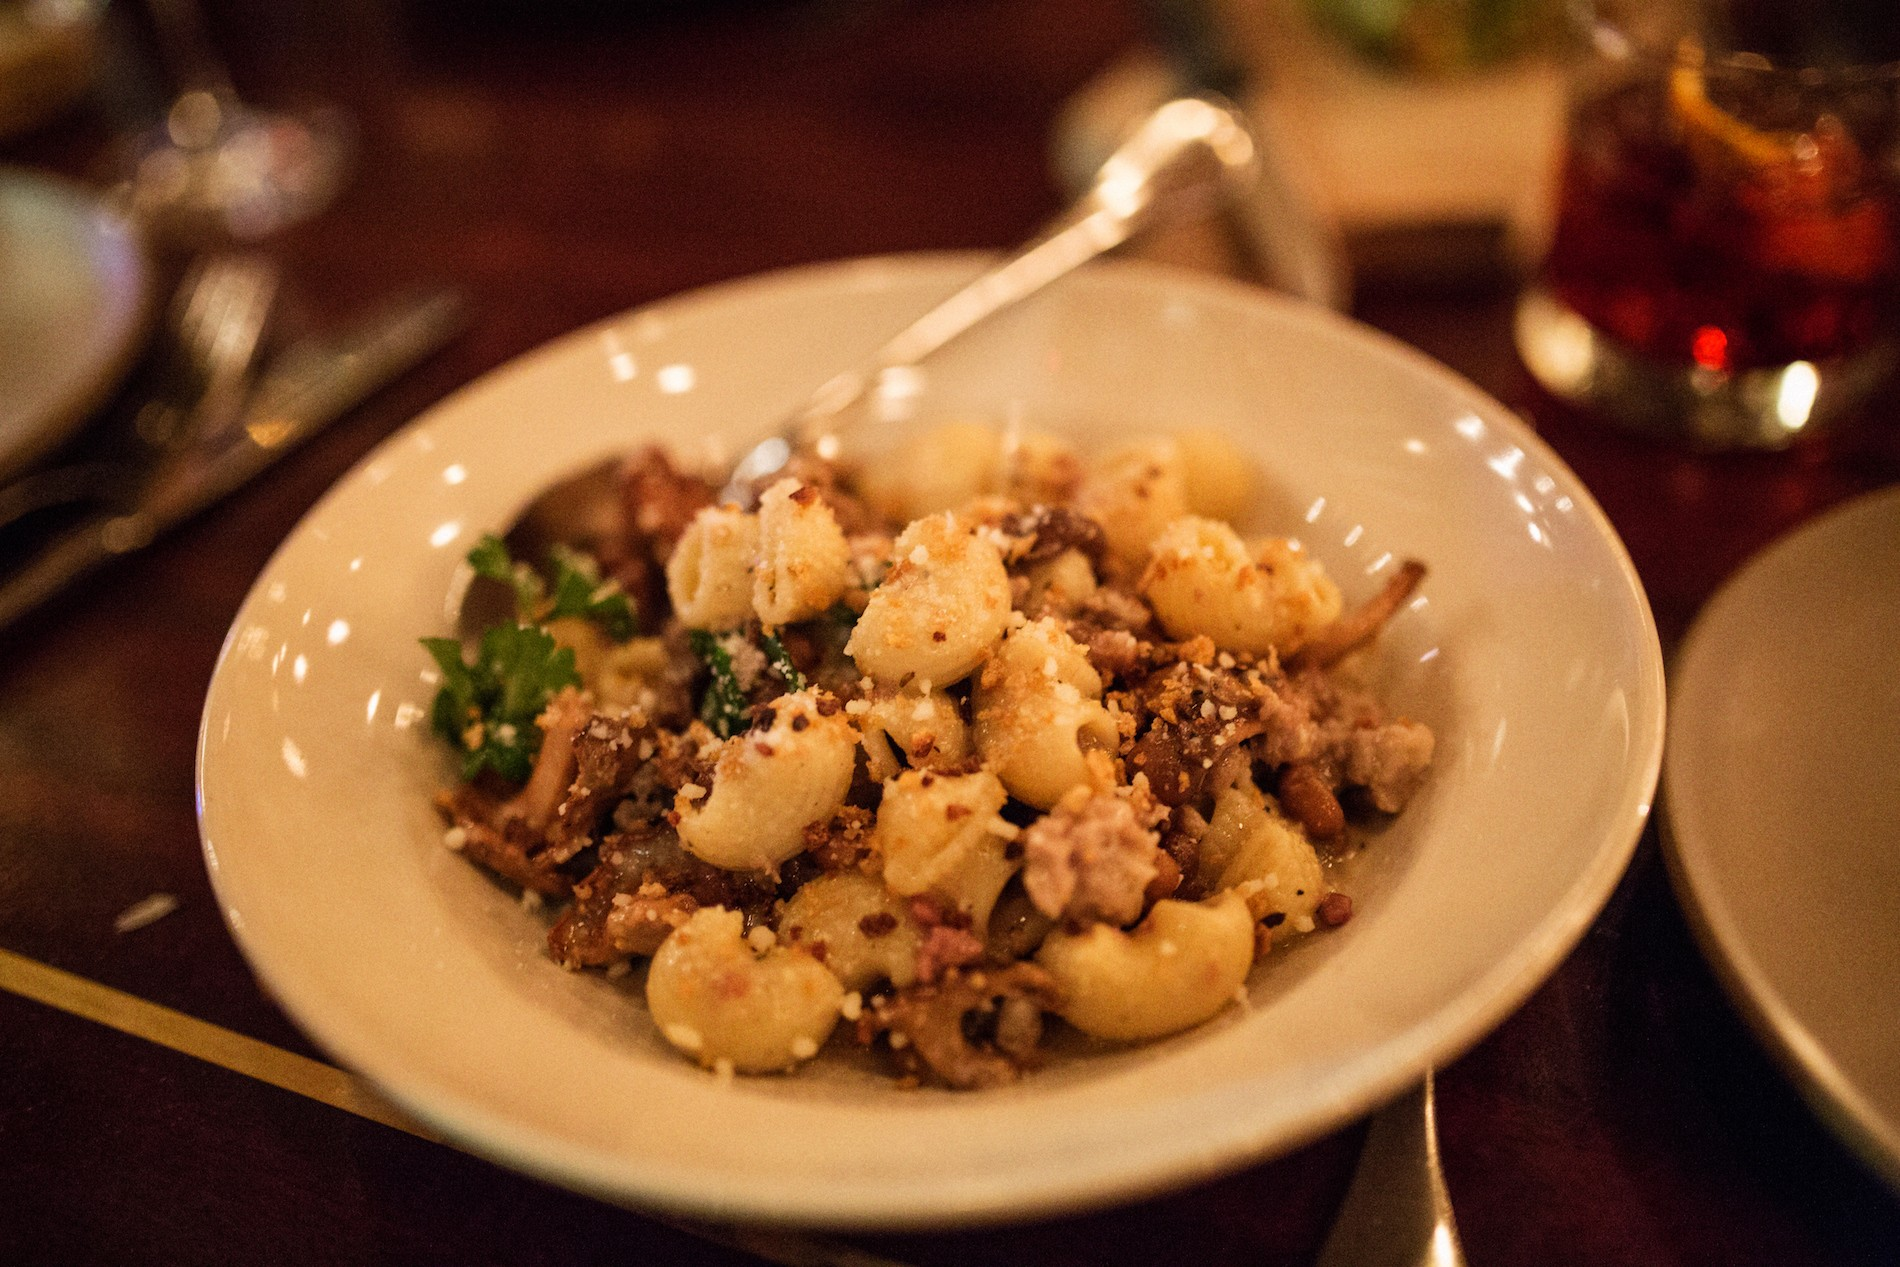 Dinner at Ava Gene's in Portland. A pasta dish made with our foraged chanterelles. Mushrooms in Portland, Oregon. August 2016. Matt Lutton / Boreal Collective for Vice Munchies